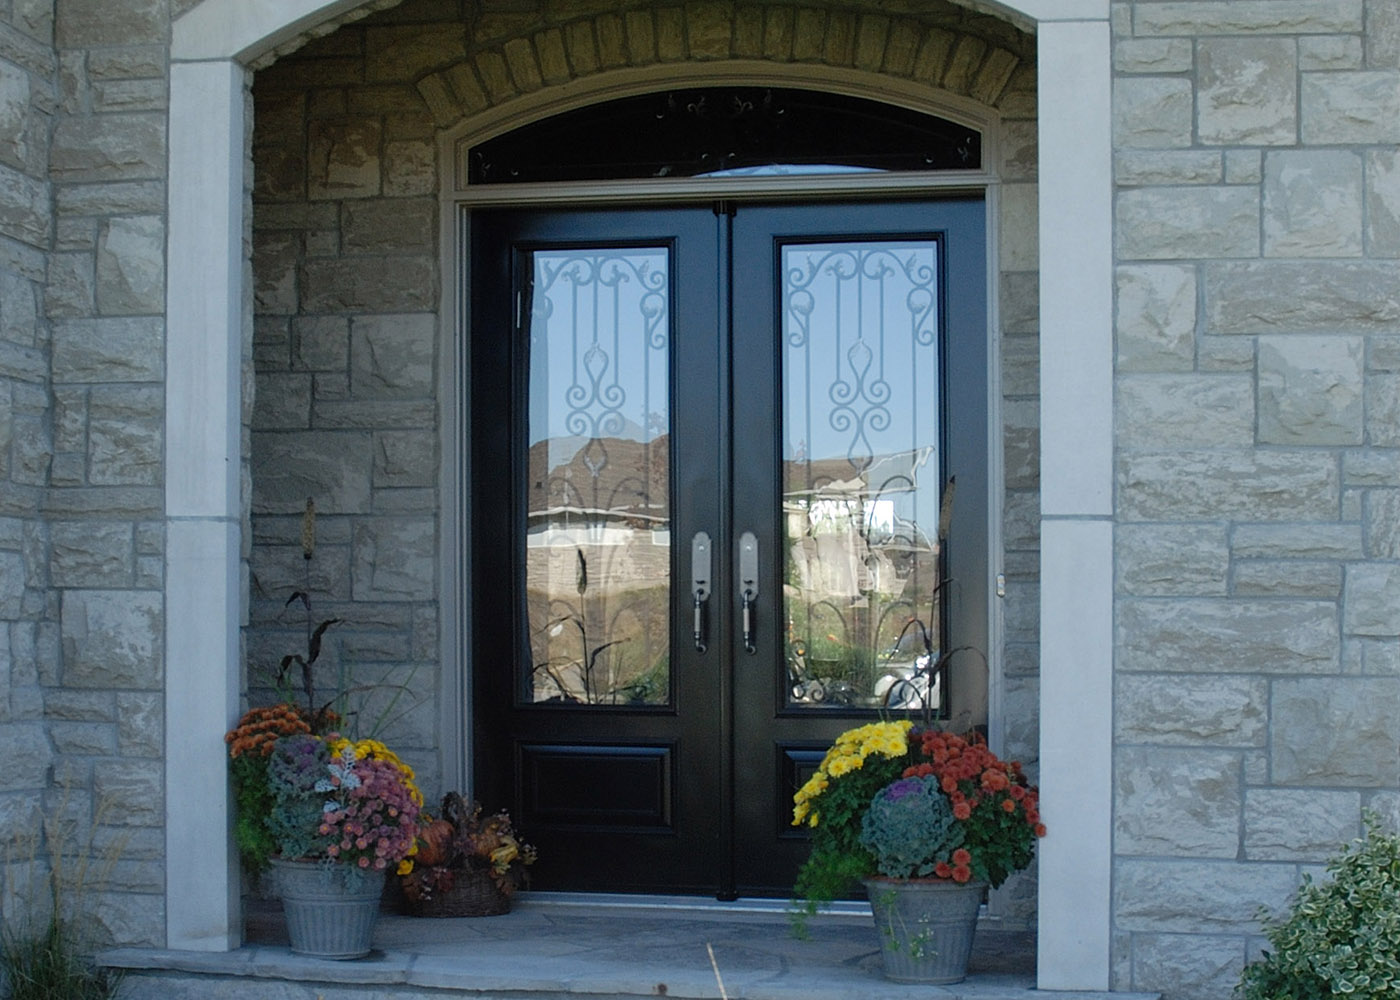 1000 #613833 Door Steel Entry Custom Wrought Iron Milan Glass save image Iron And Glass Entry Doors 40971400